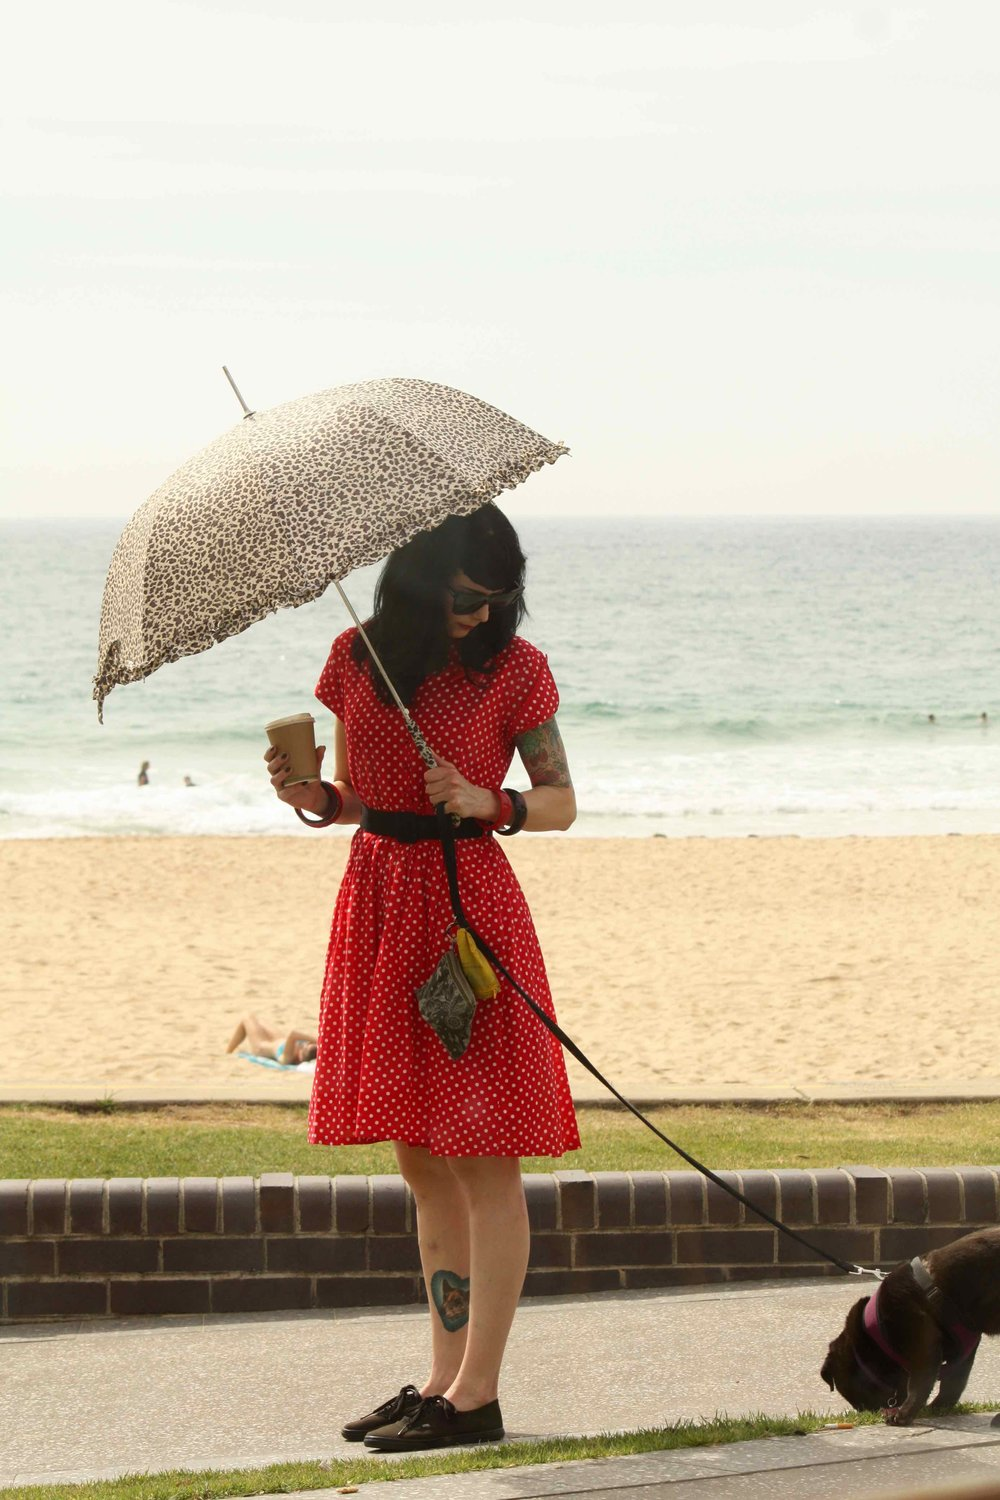 Lady with dog, Wollongong, 2014 ©